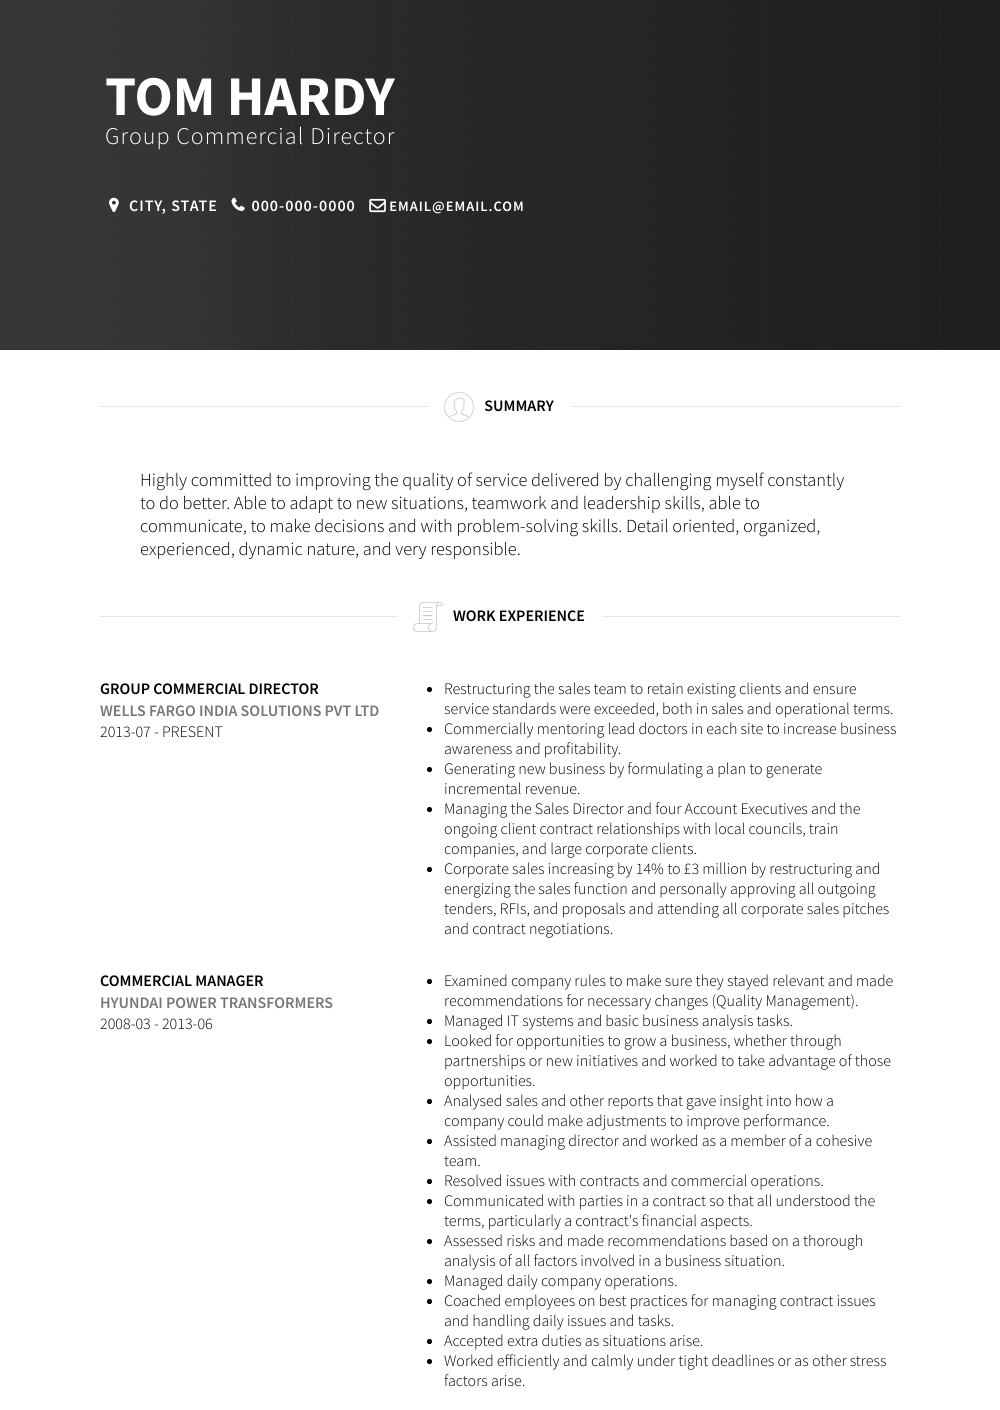 Commercial Director - Resume Samples & Templates | VisualCV